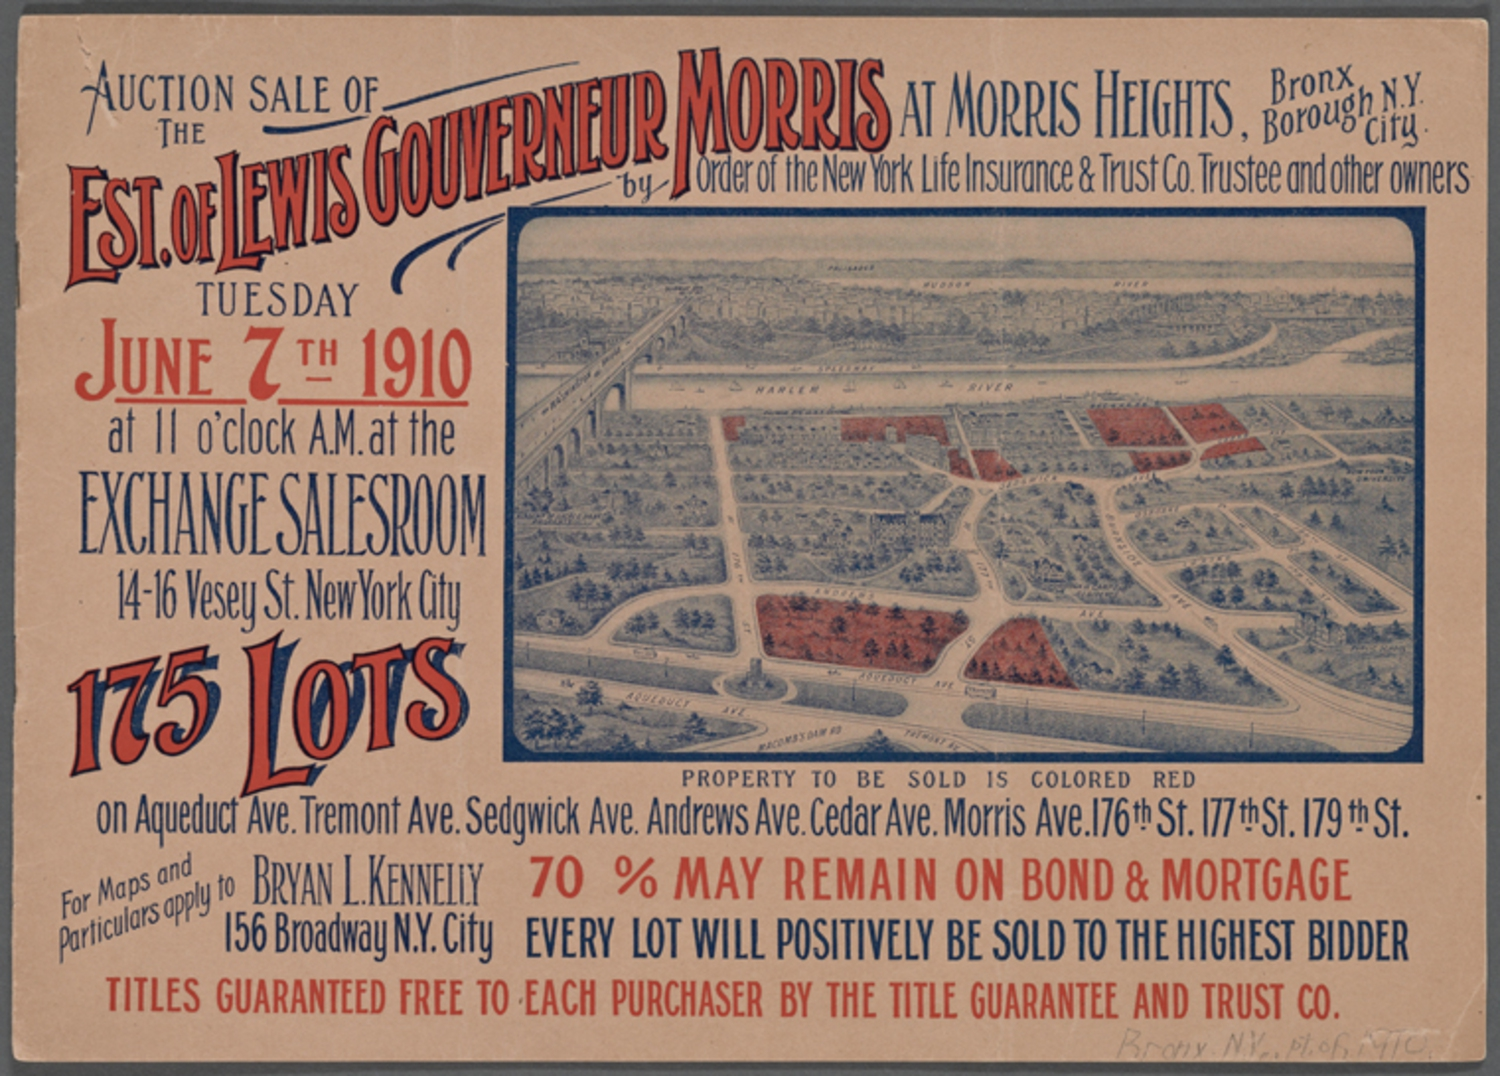 Auction Sale of the Est. of Lewis Gouverneur Morris at Morris Heights, Bronx Borough NYC... 175 Lots (1910)